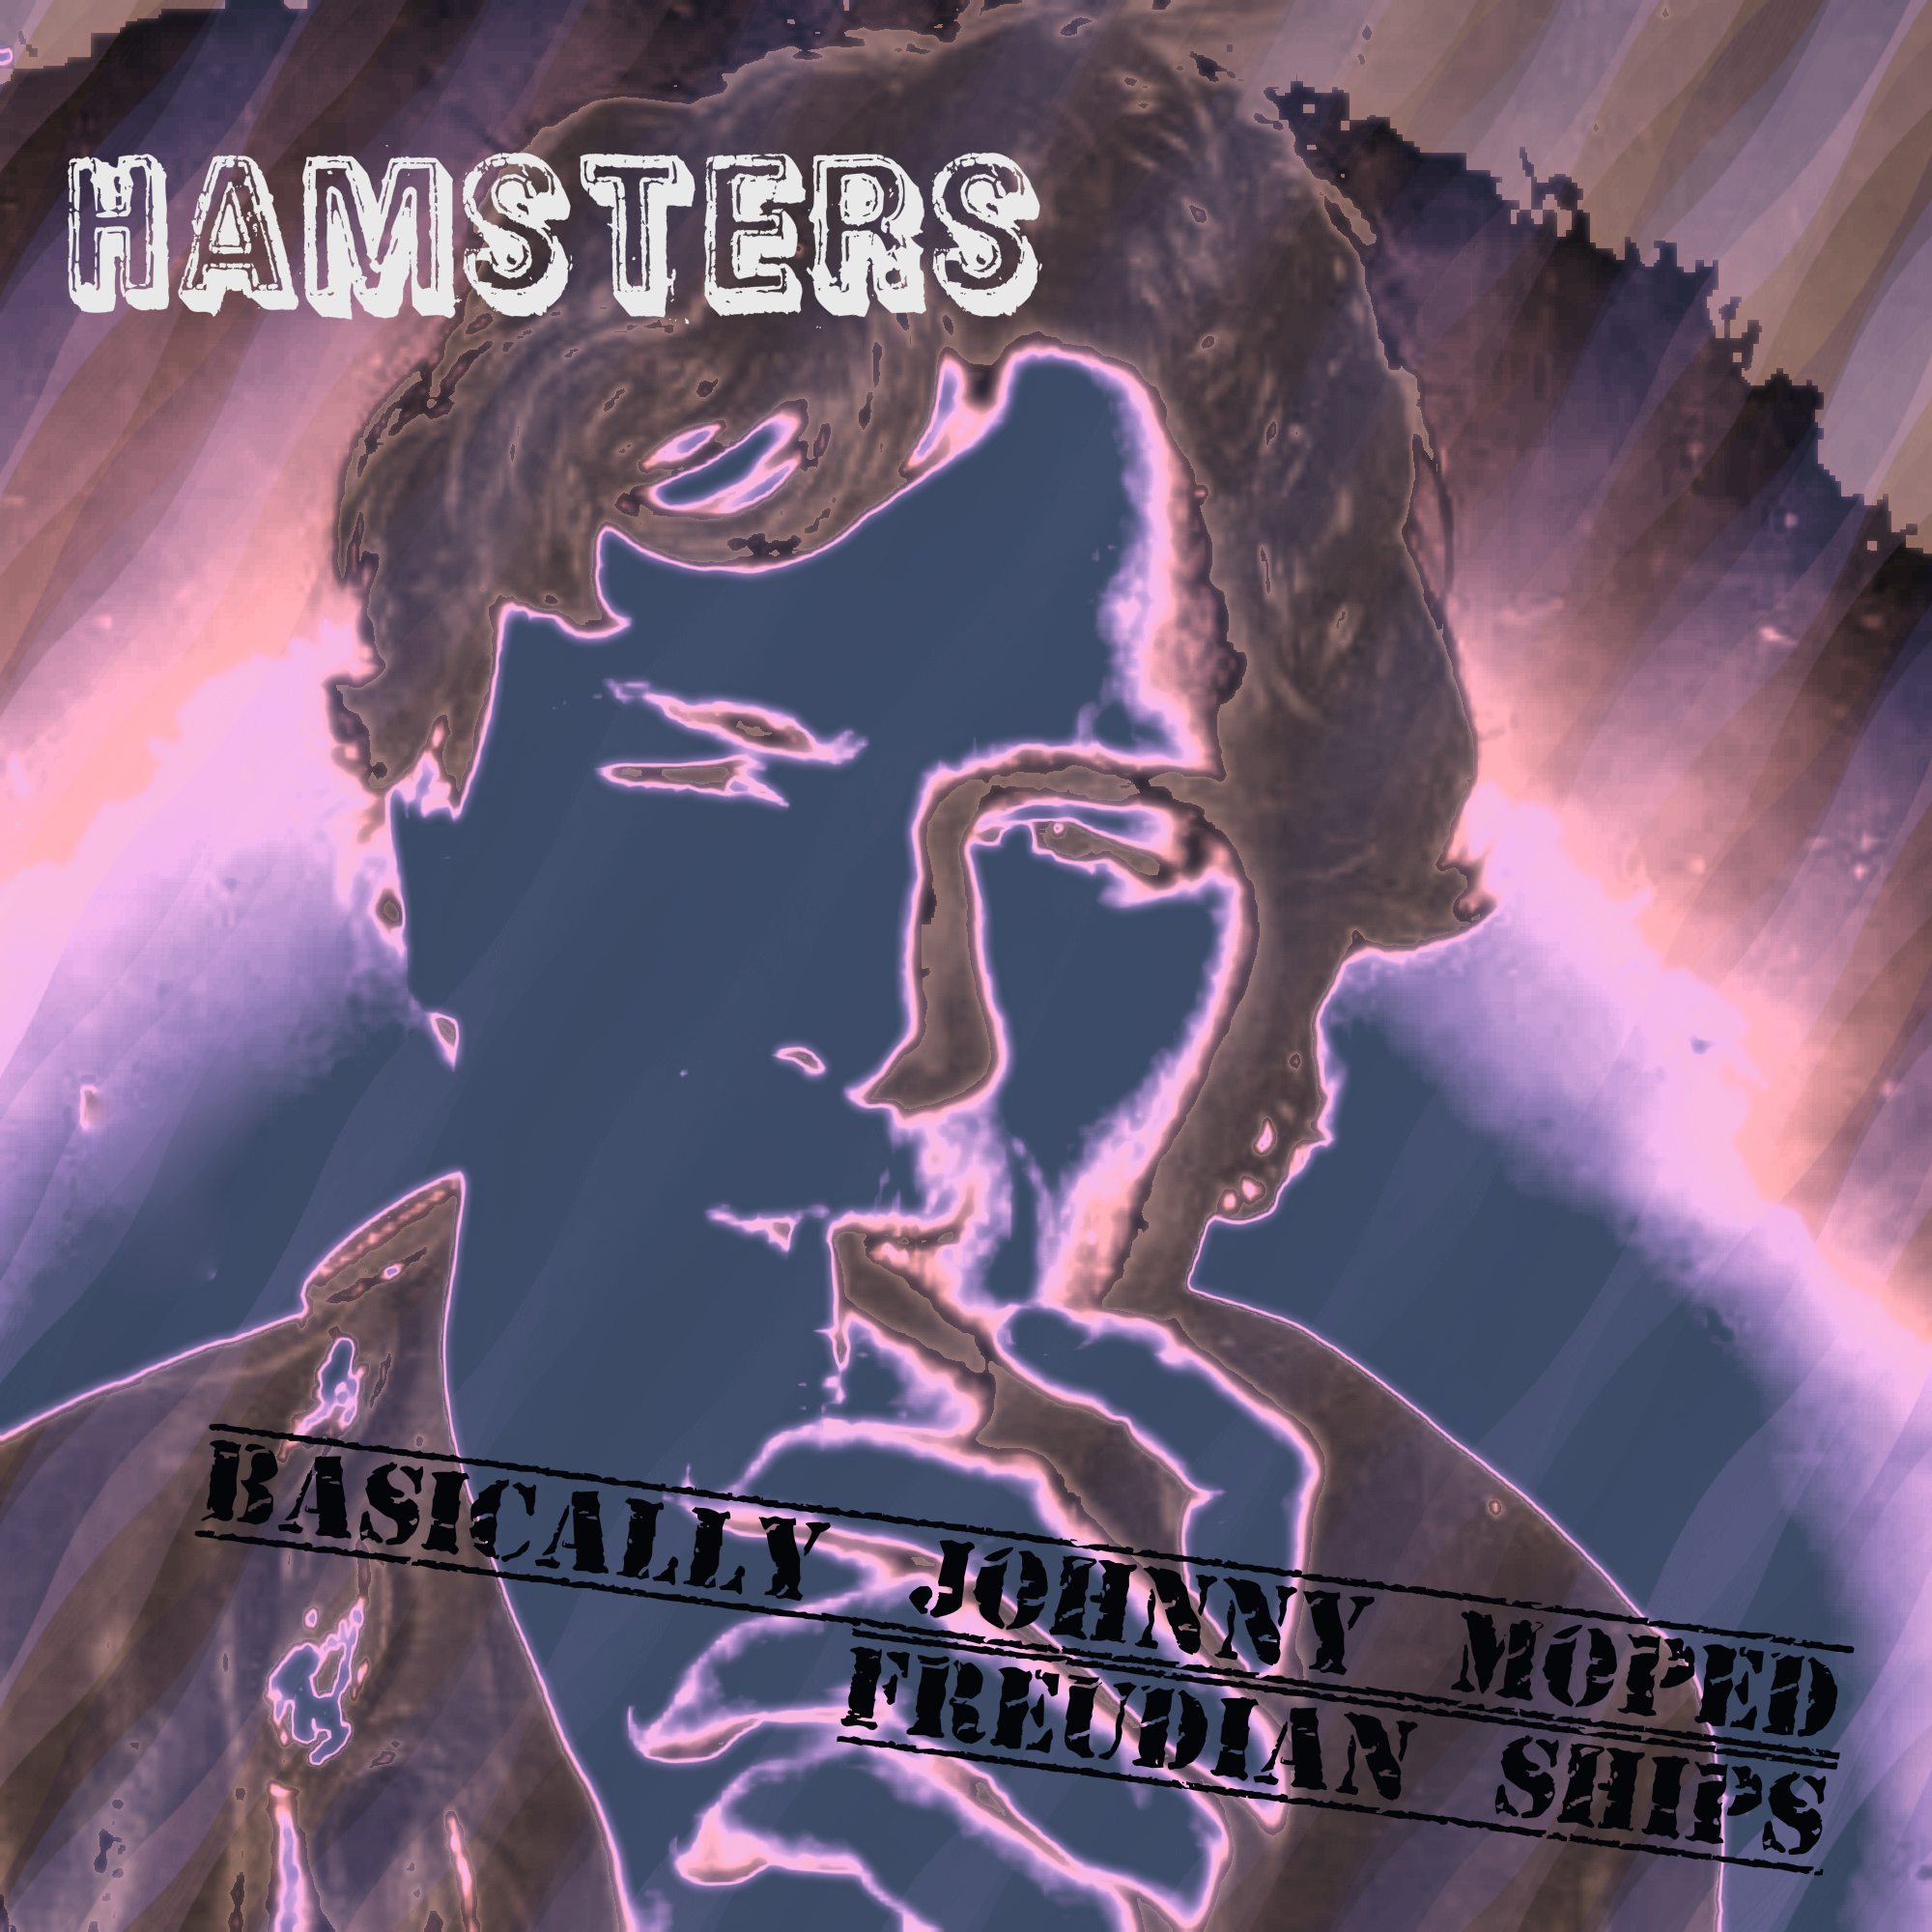 hamsters-basically-johnny-moped